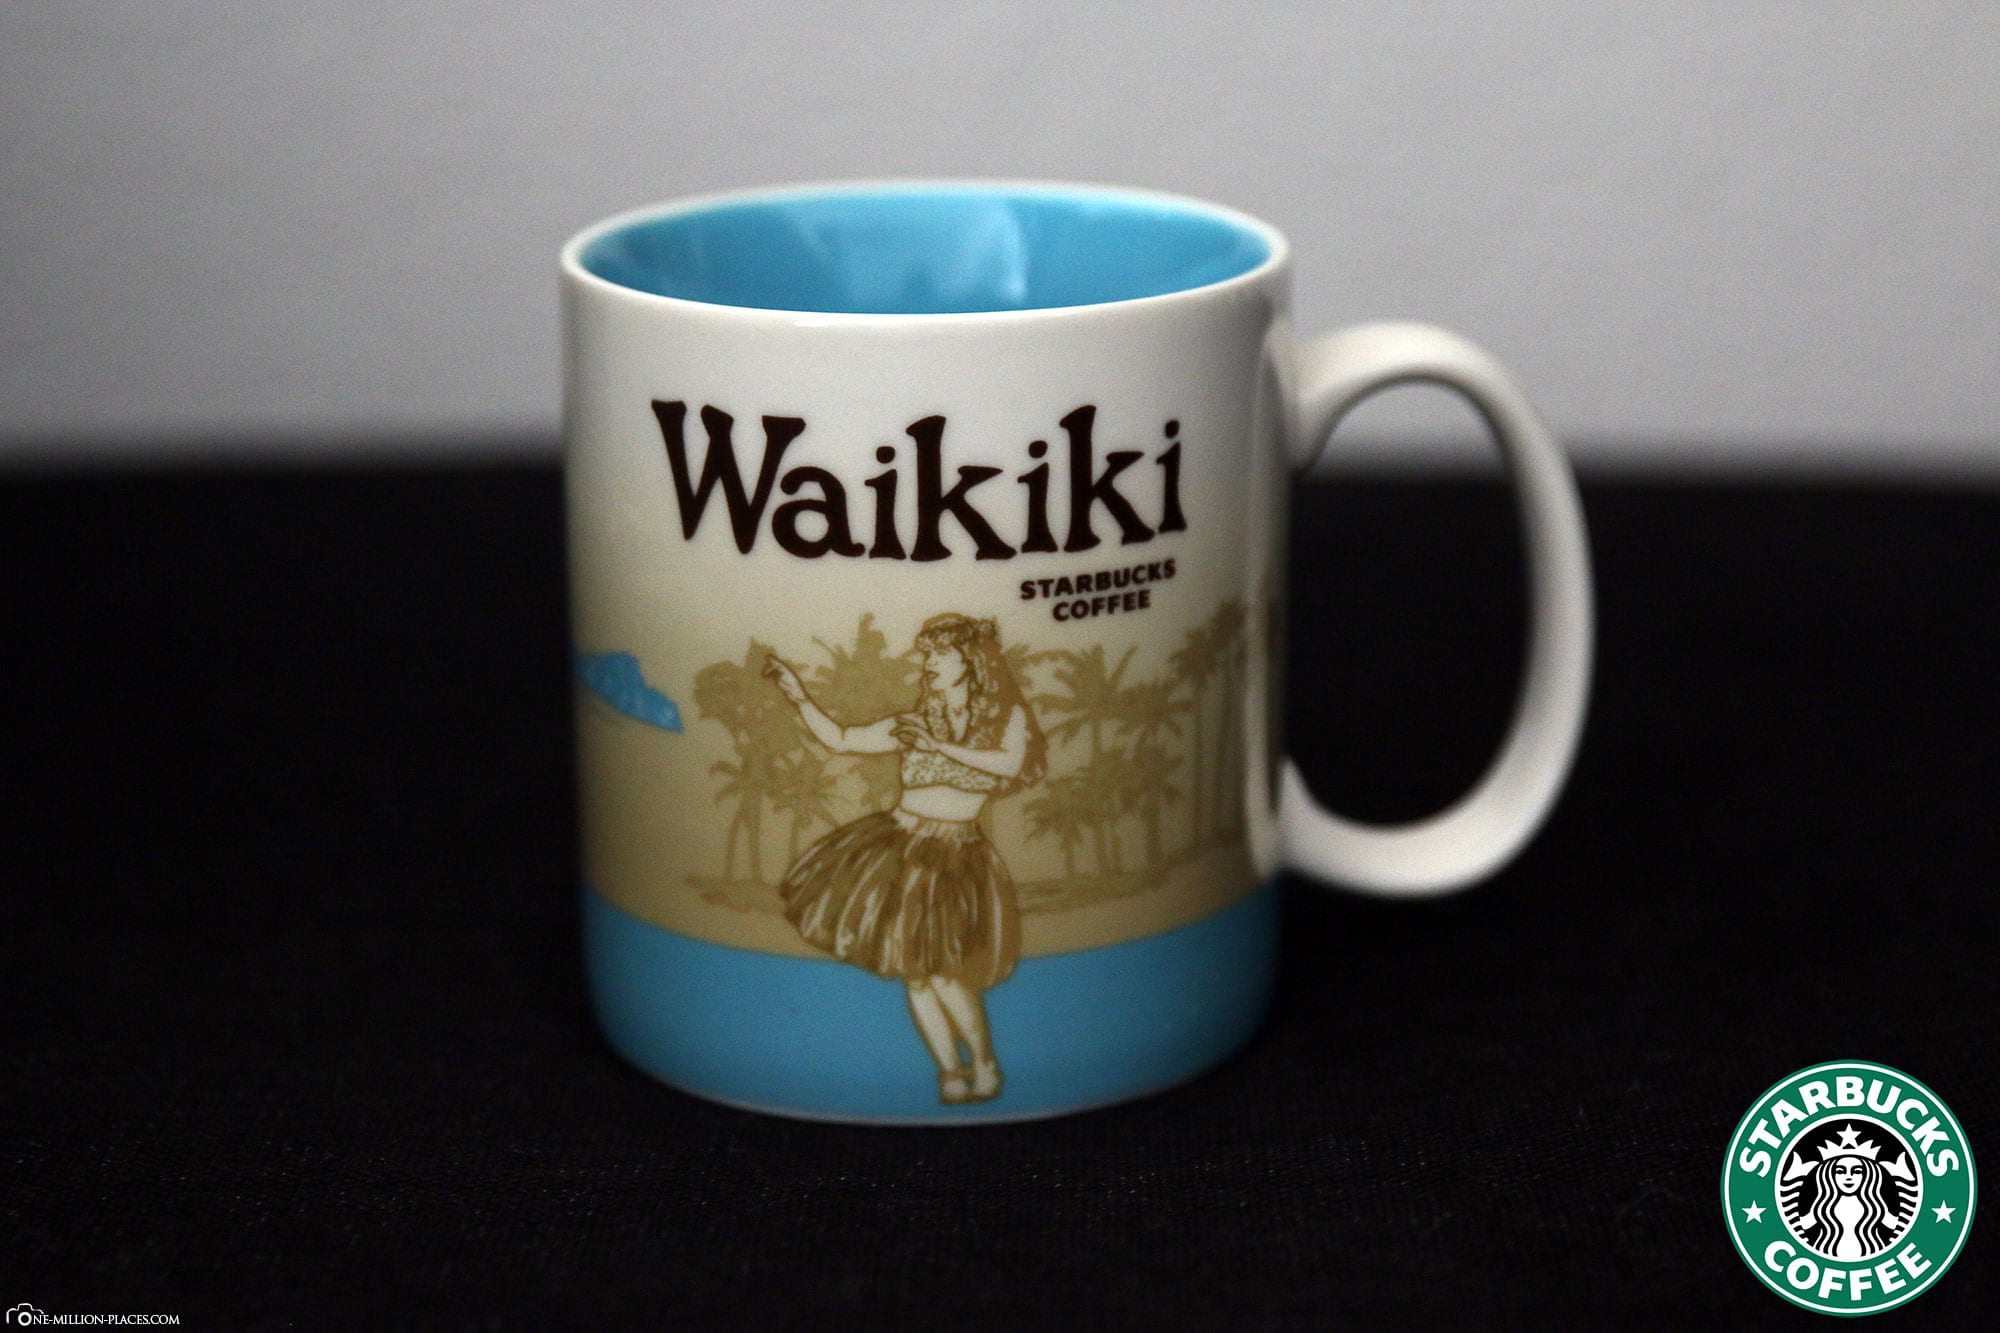 Waikiki, Starbucks Cup, Global Icon Series, City Mugs, Collection, Hawaii, Travelreport